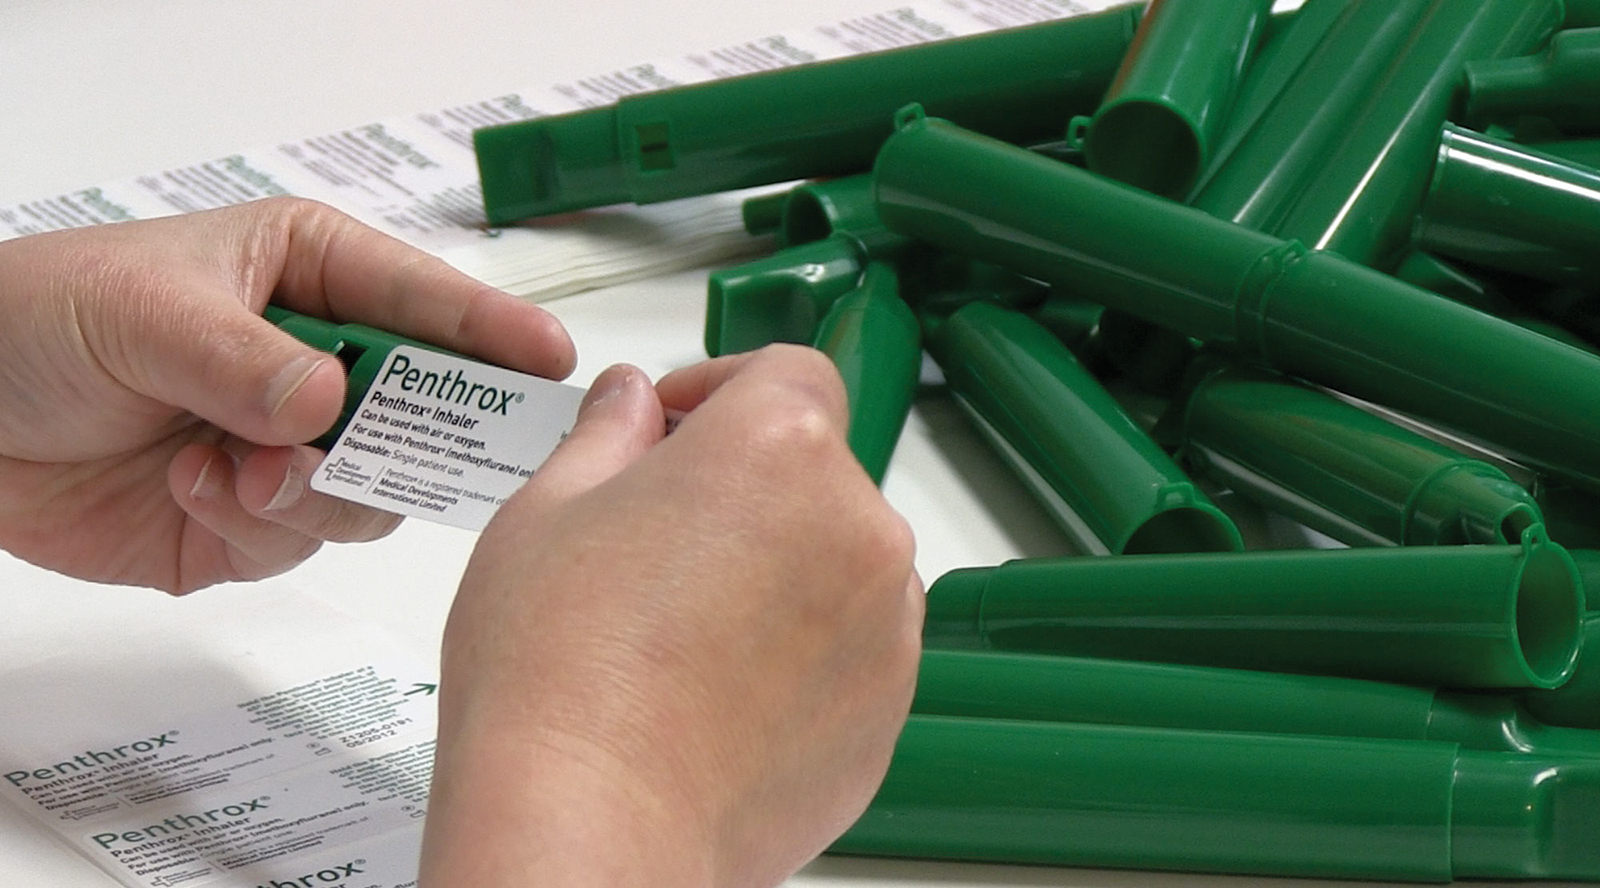 Hands holding Penthrox label above inhaler tubes piled on table.